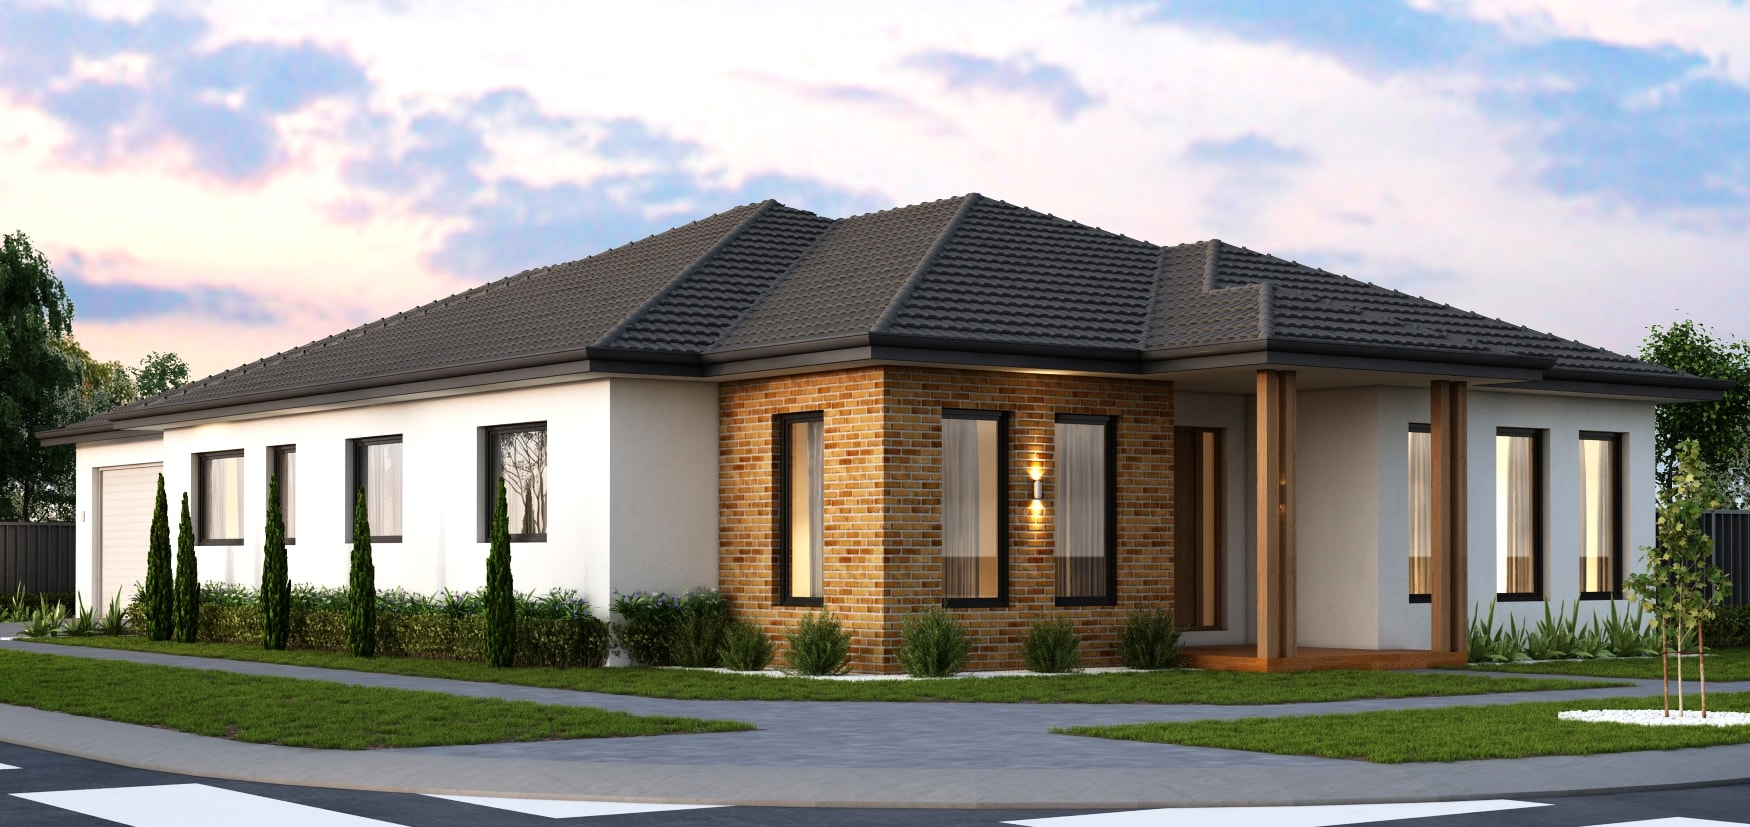 3d House Elevation Designs Blessings For The Construction Business